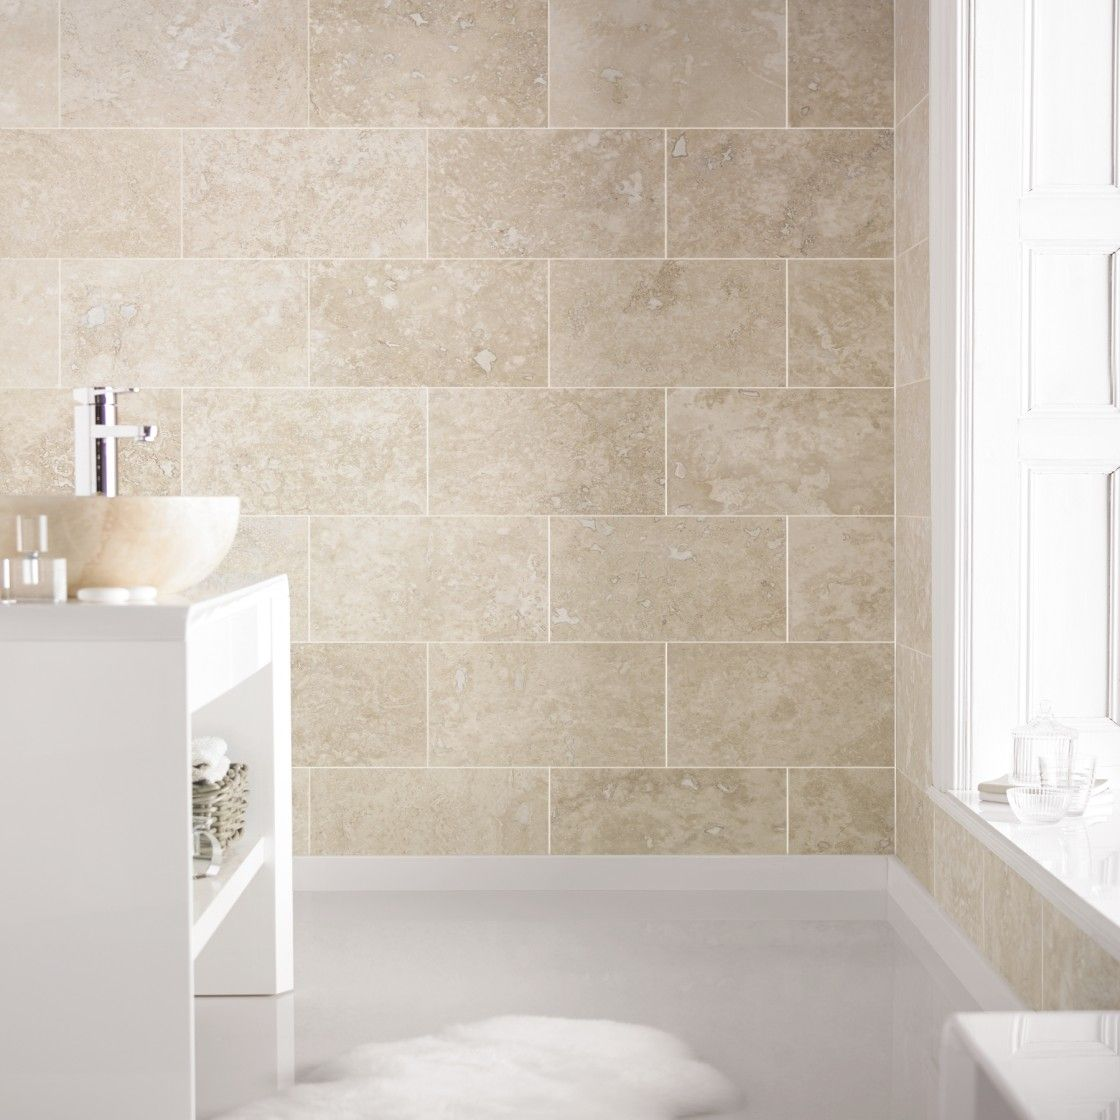 How To Do Wall Tile In Bathroom: Brighten Up Your Home With Lighter Travertine Tiles, Like